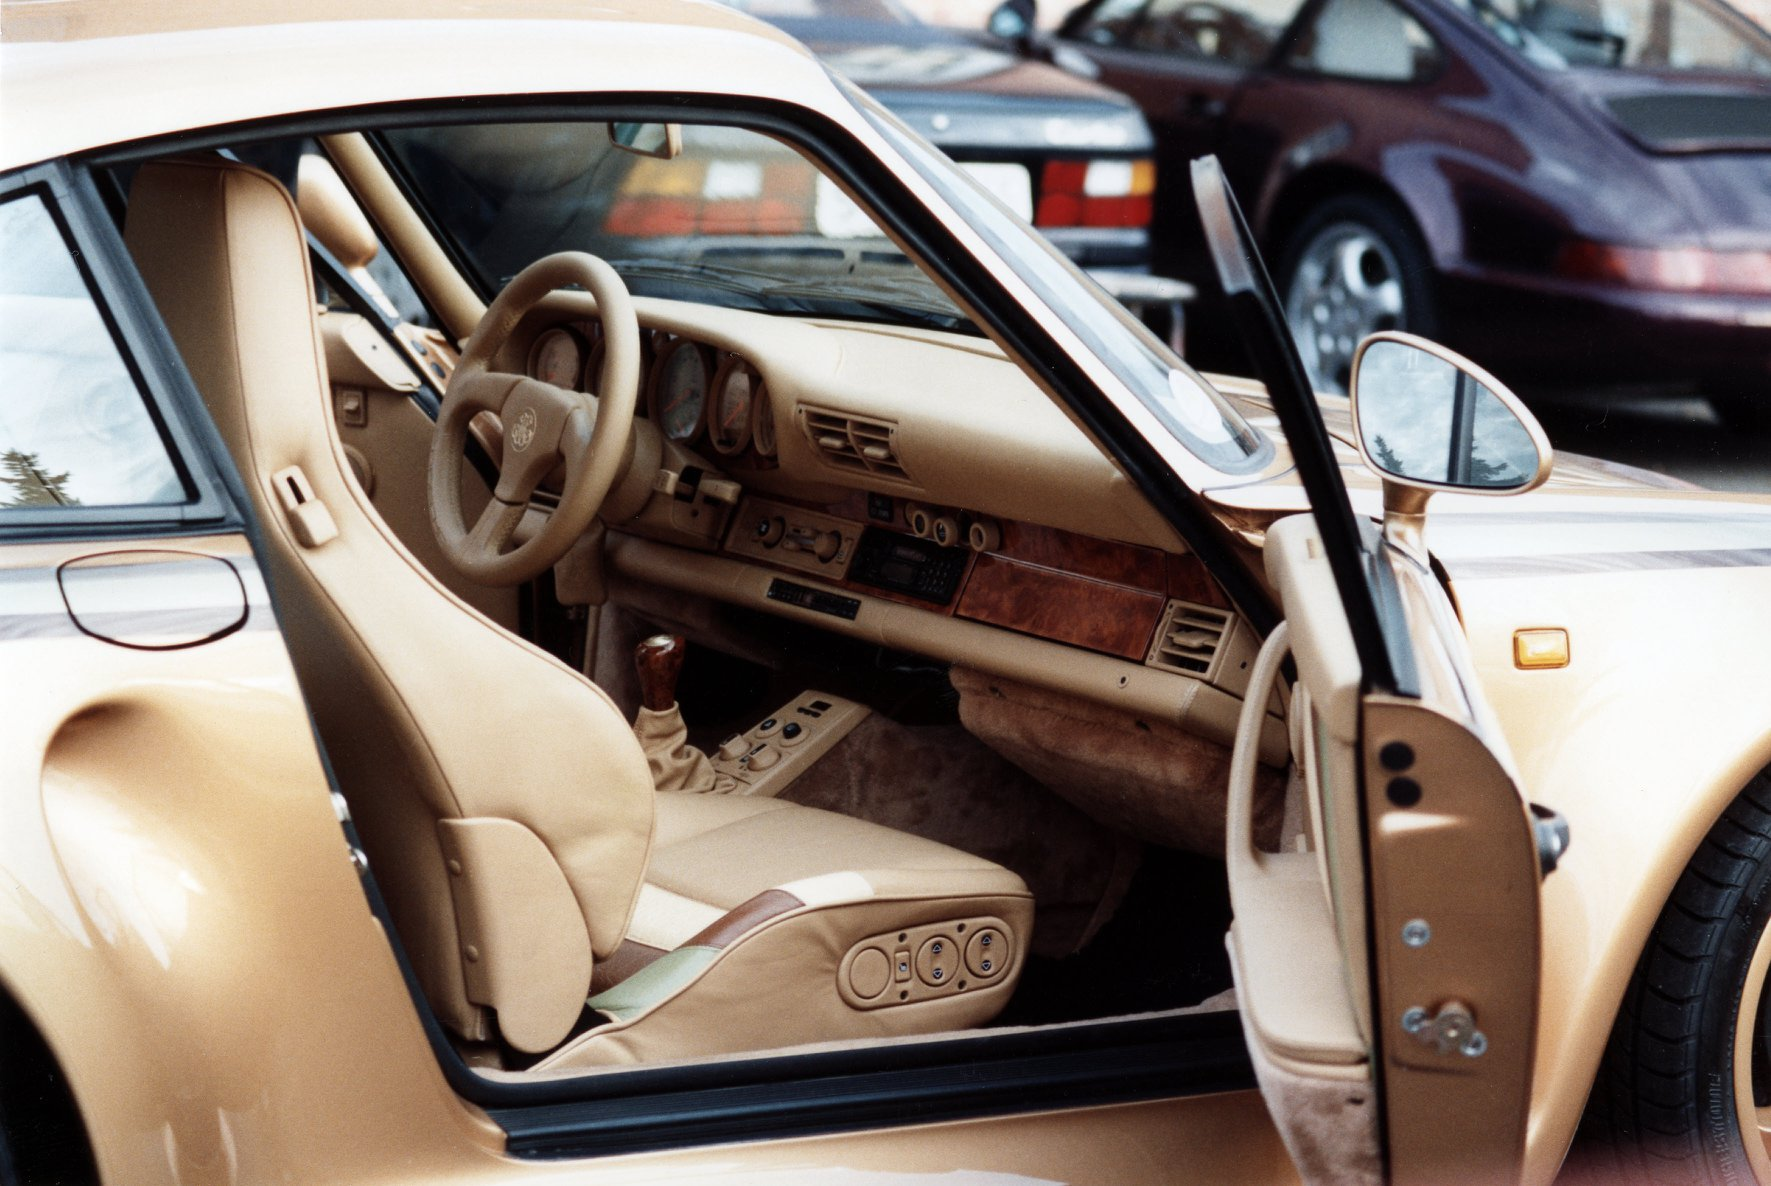 558e9e63-porsche-exclusive-959-in-gold-built-for-arab-prince-8